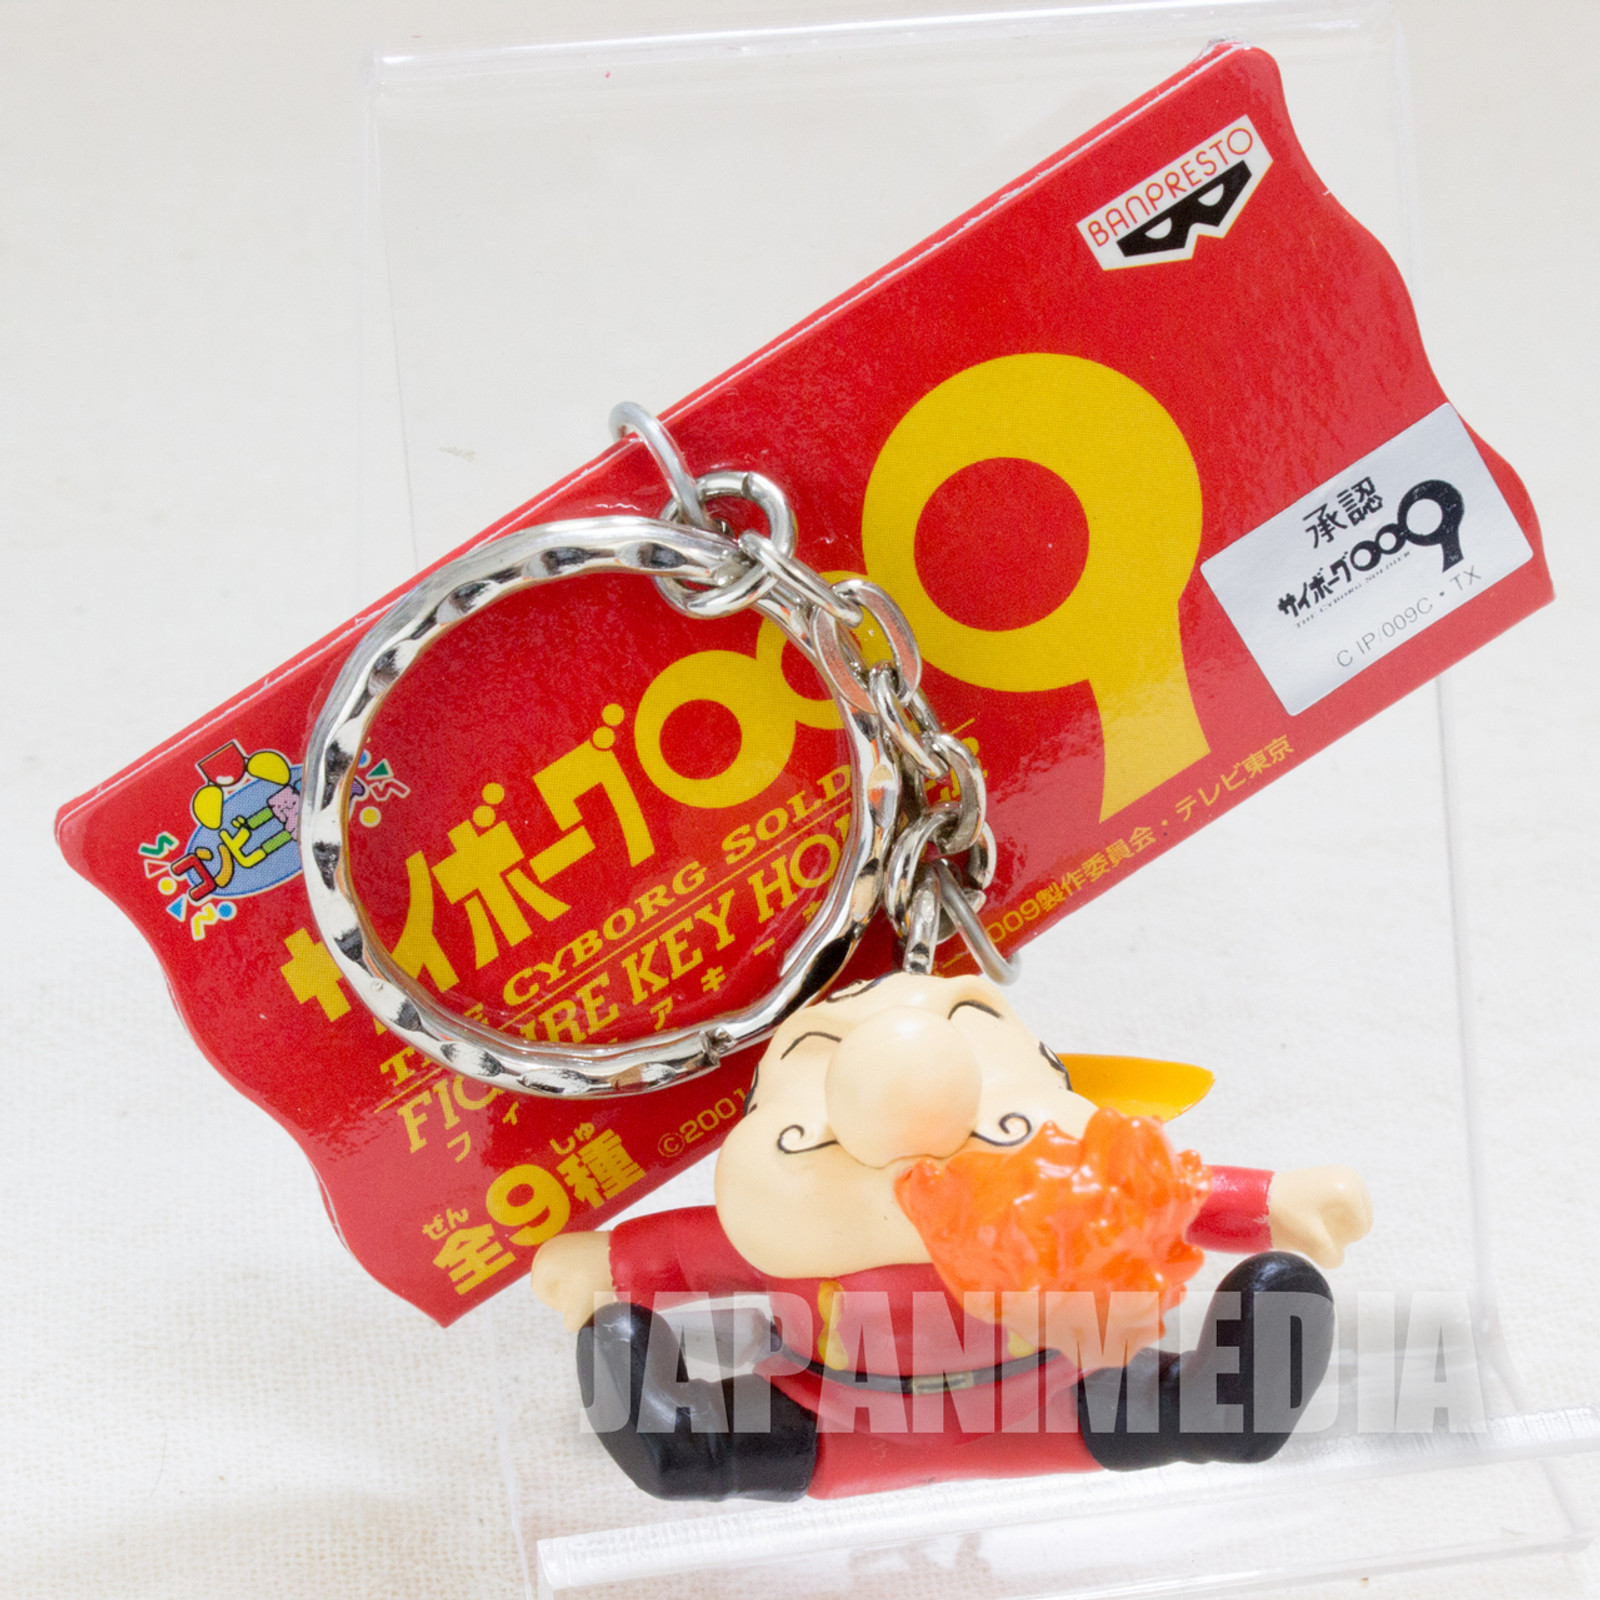 Cyborg 009 Chang Changku 006 Figure Keychain JAPAN ANIME